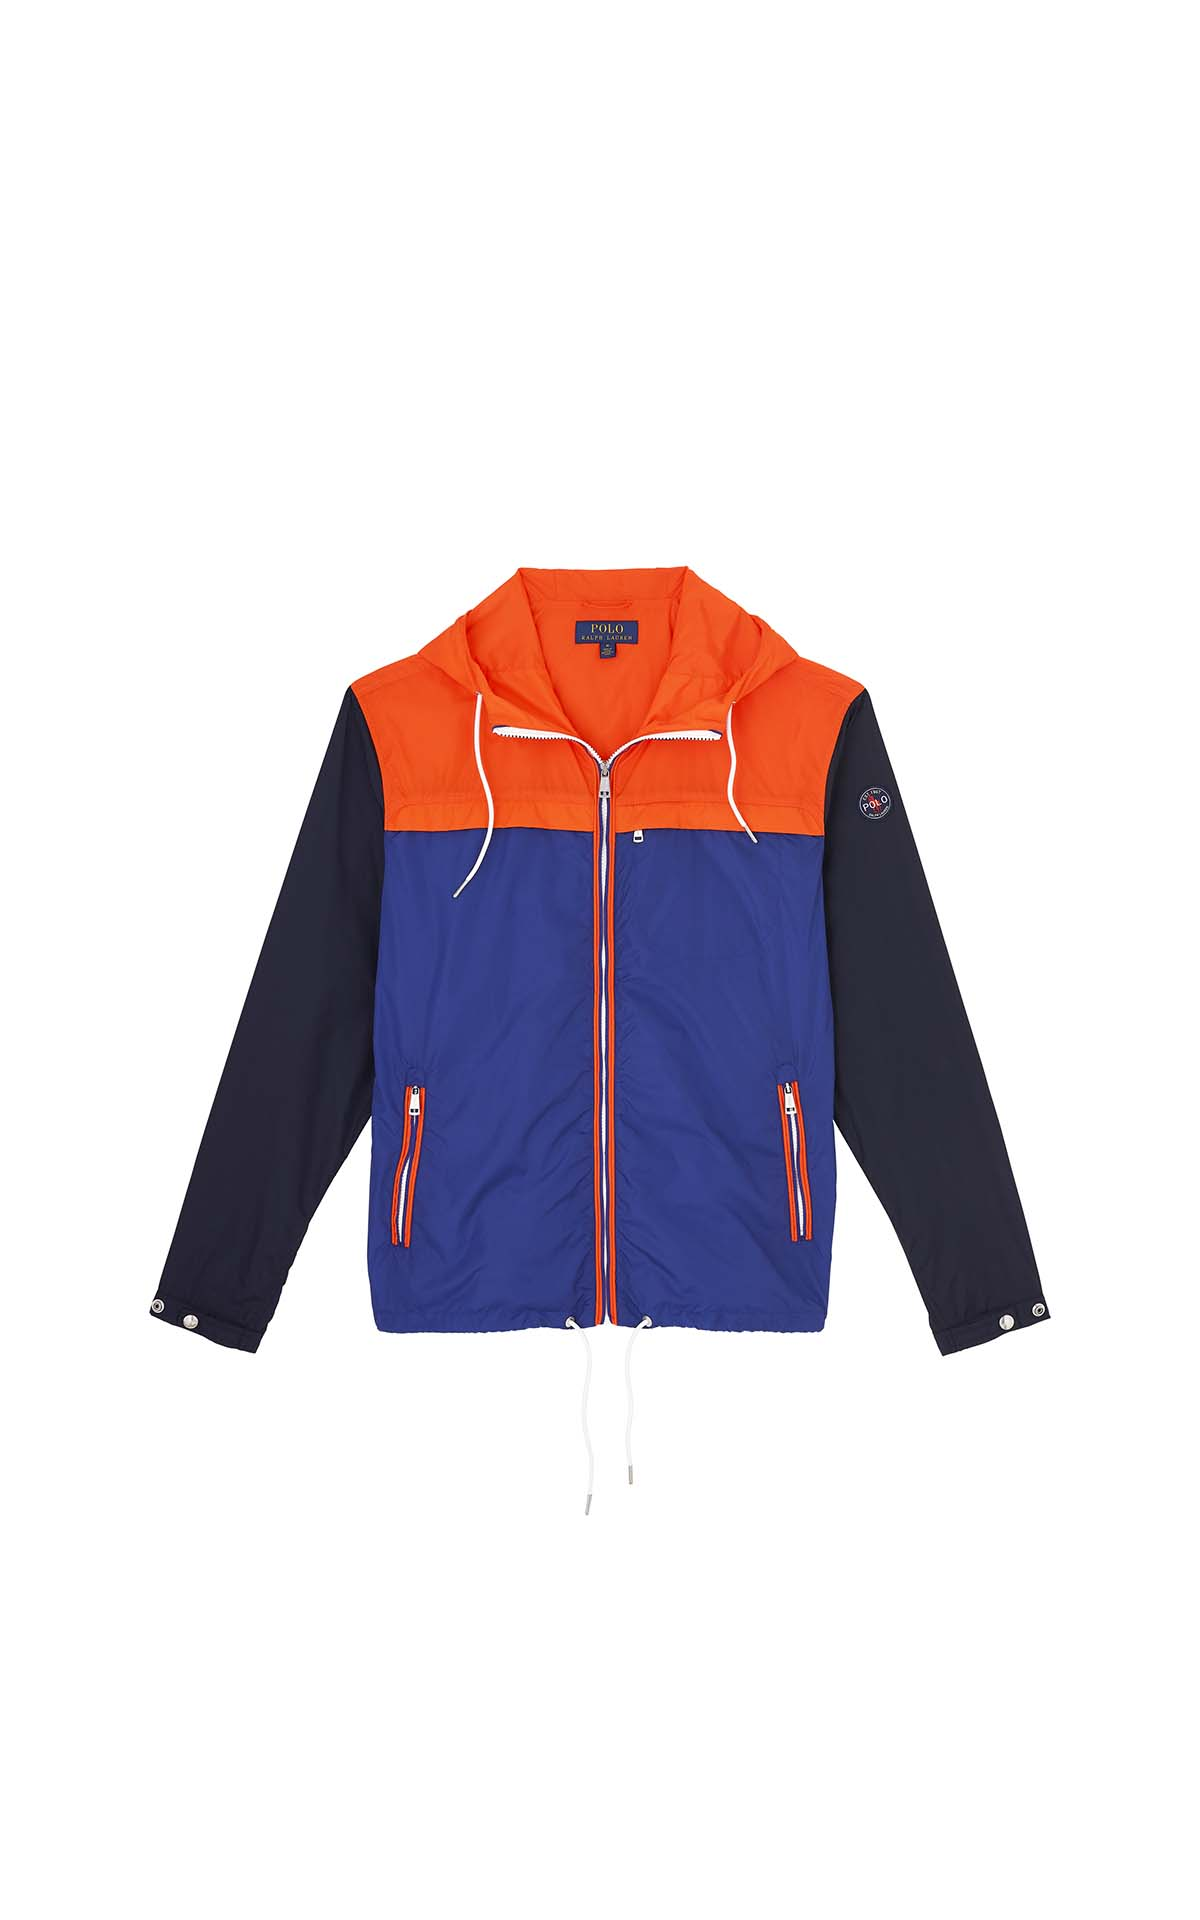 Polo Ralph Lauren Benton anorak at The Bicester Village Shopping Collection